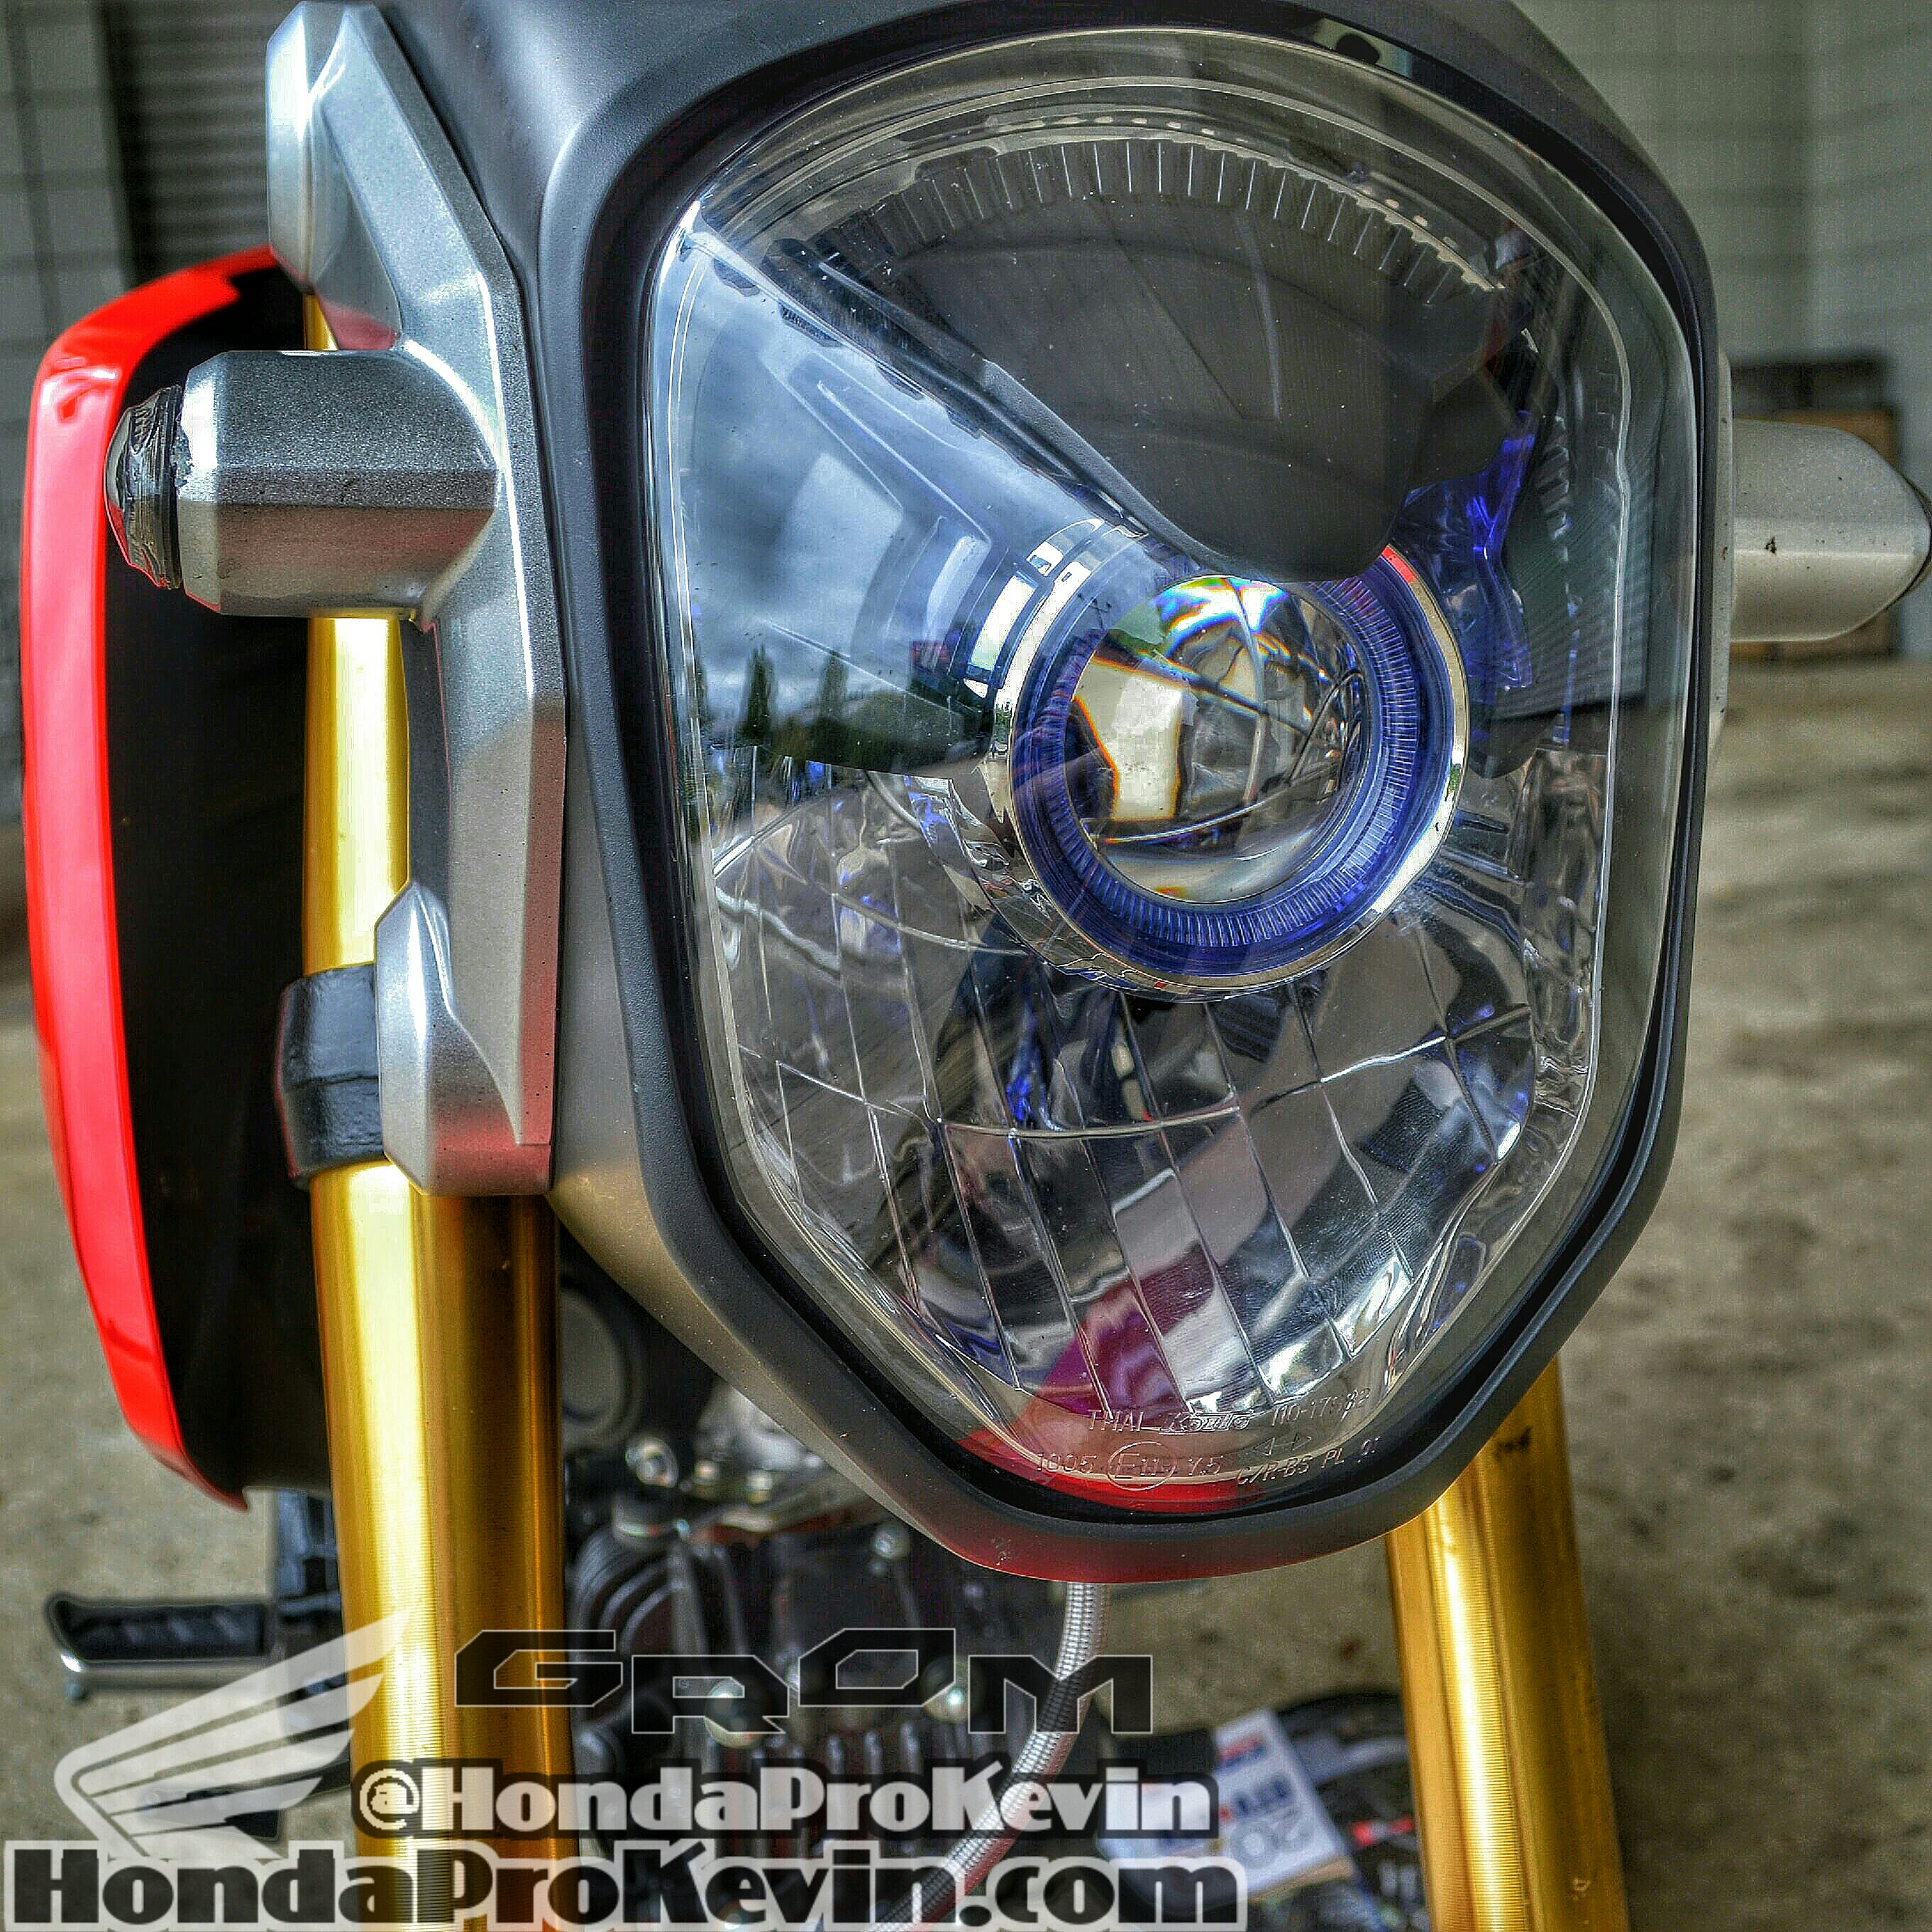 Honda Grom 125 Owners / Ride Review - Performance Mods + More